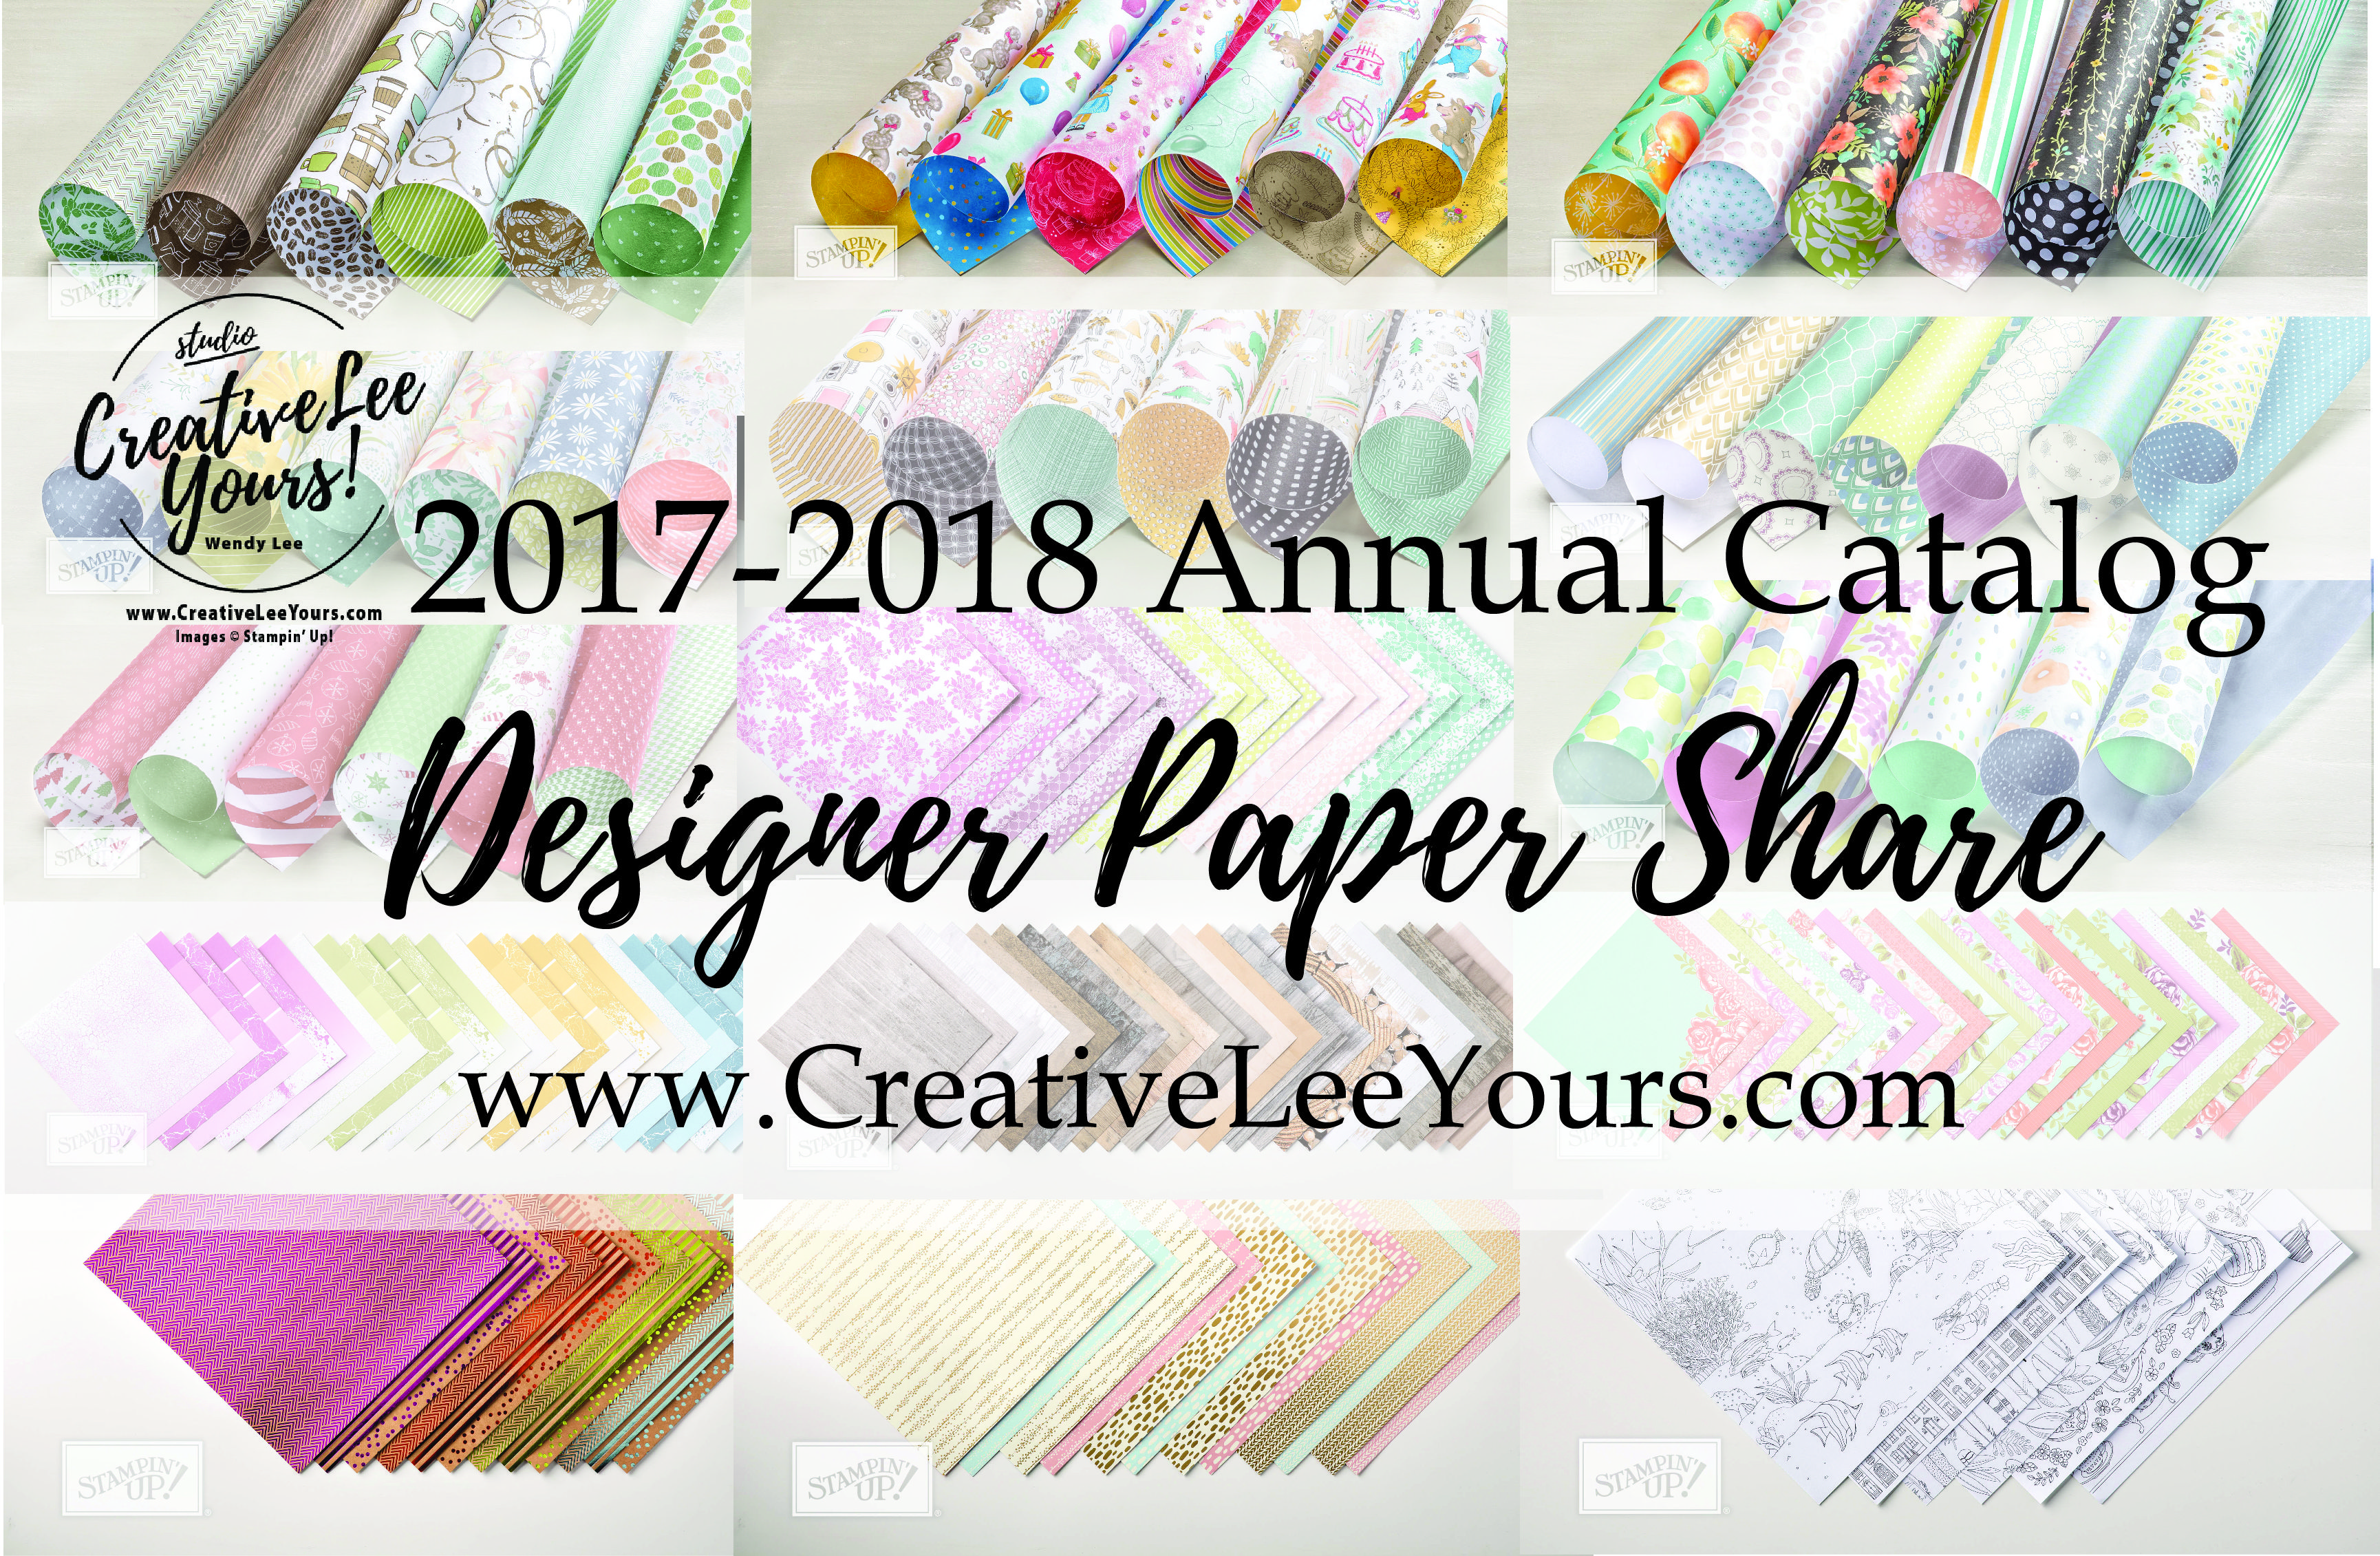 2017 2018 annualcatalog designer paper share with Wendy Lee, stampin up, papercrafting, #creativeleeyours,creativelyyours